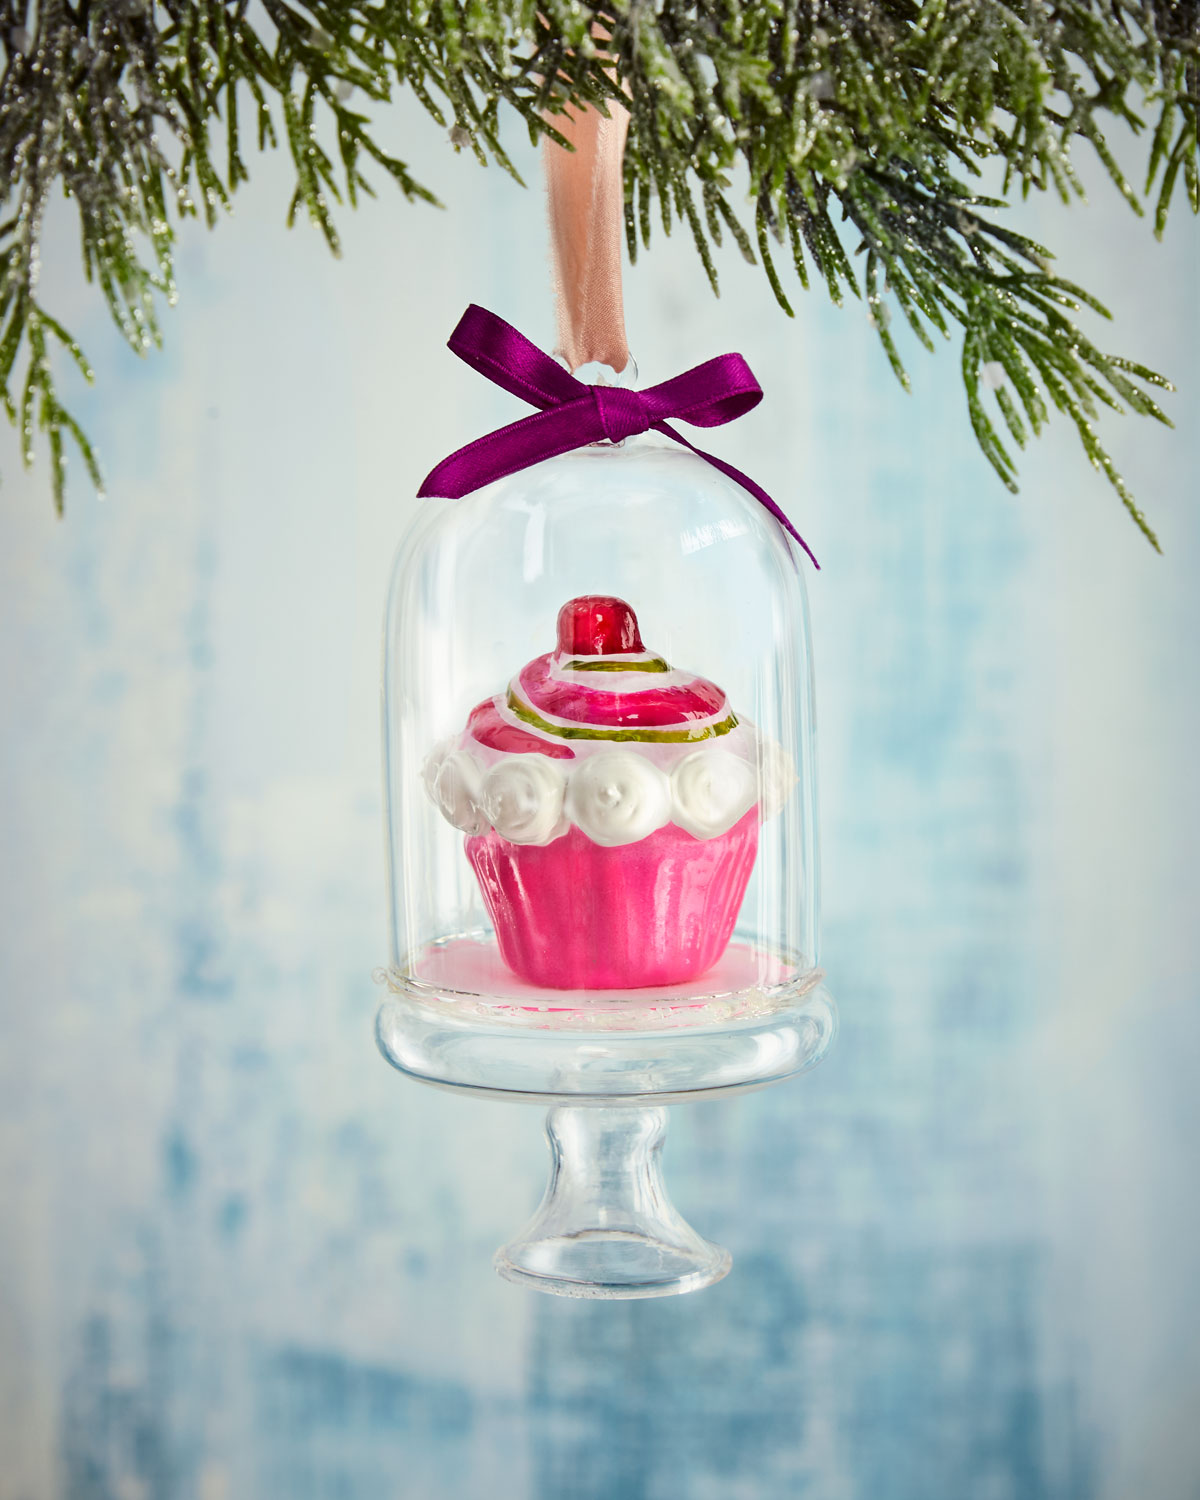 Pink Cupcake in Dome Christmas Ornament